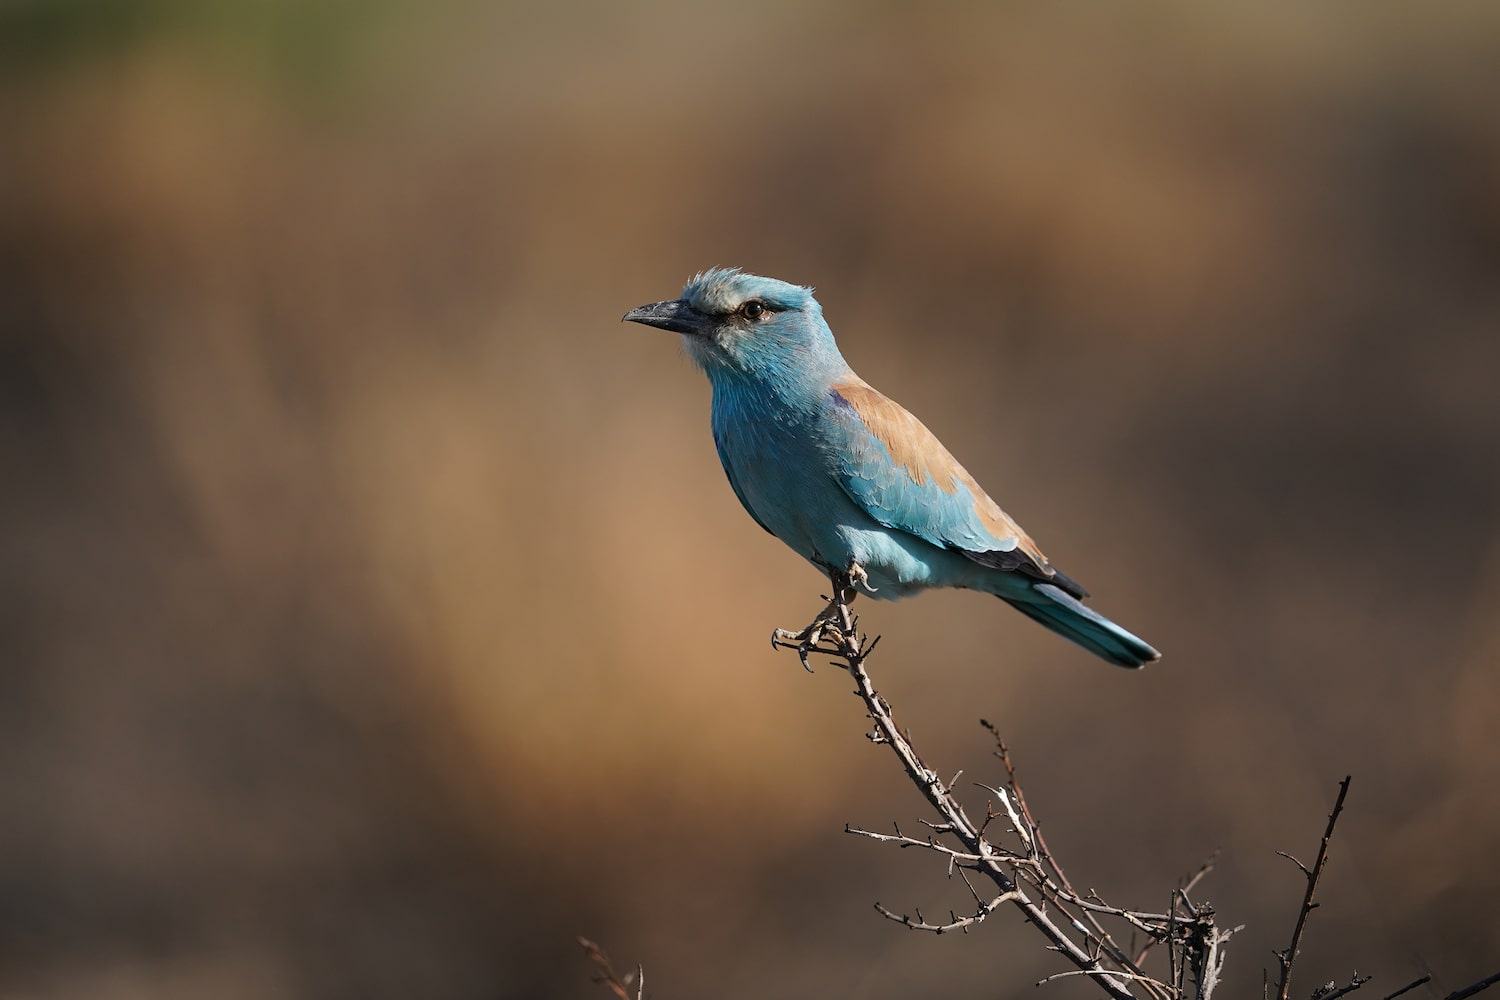 tiny-blue-orange-bird-perched-alpha-7III